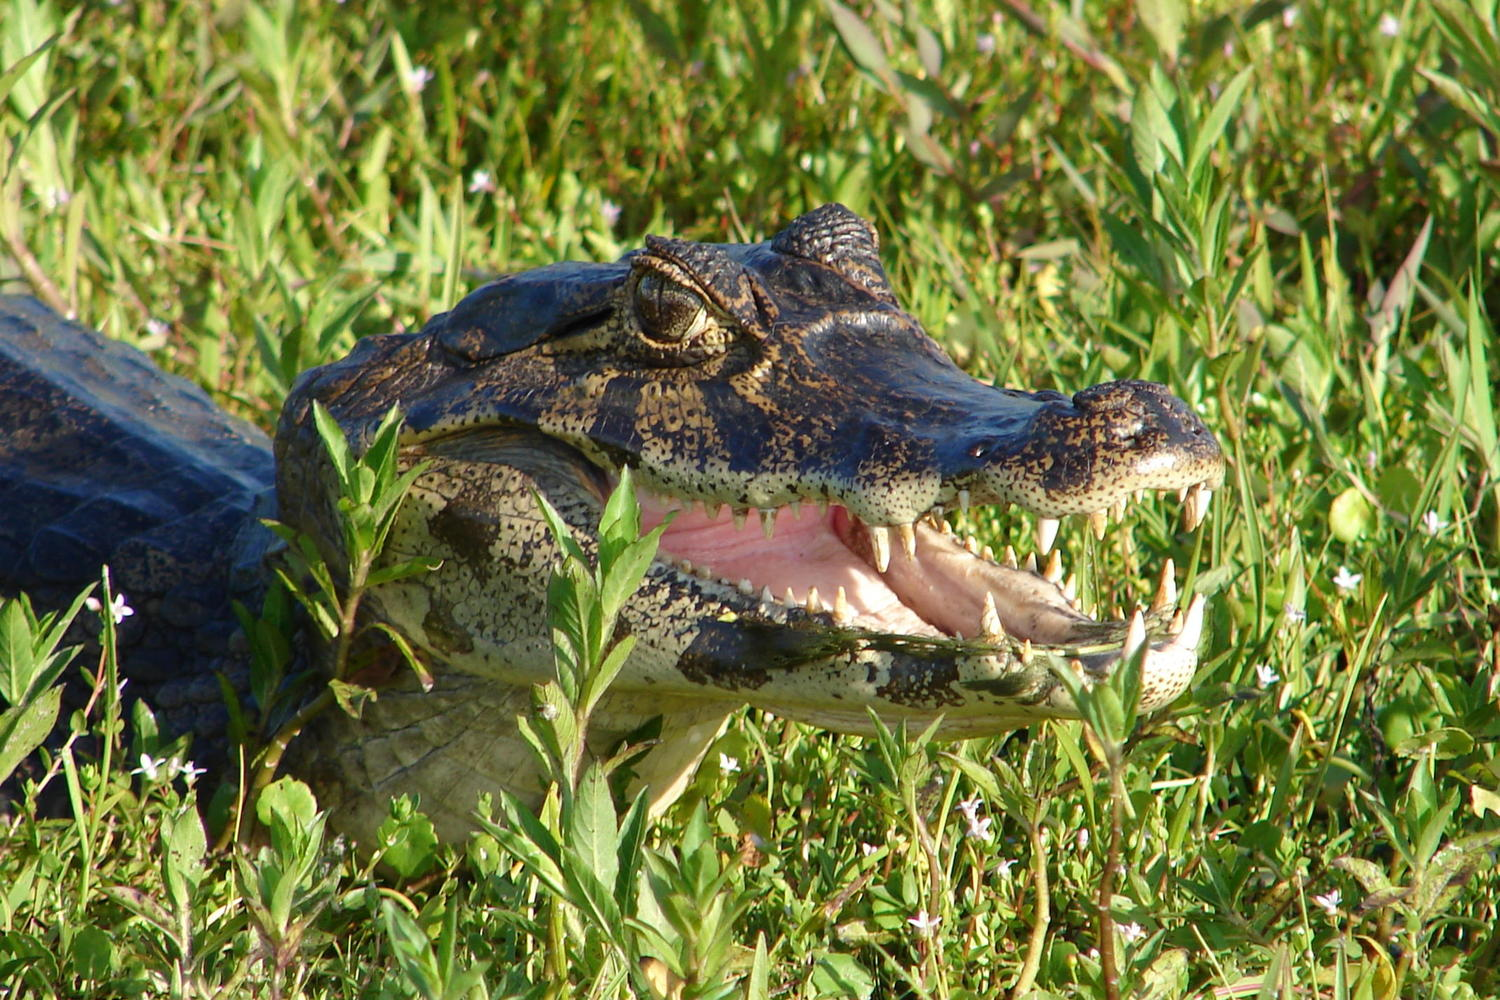 Spectacled caiman in the Ibera wetlands